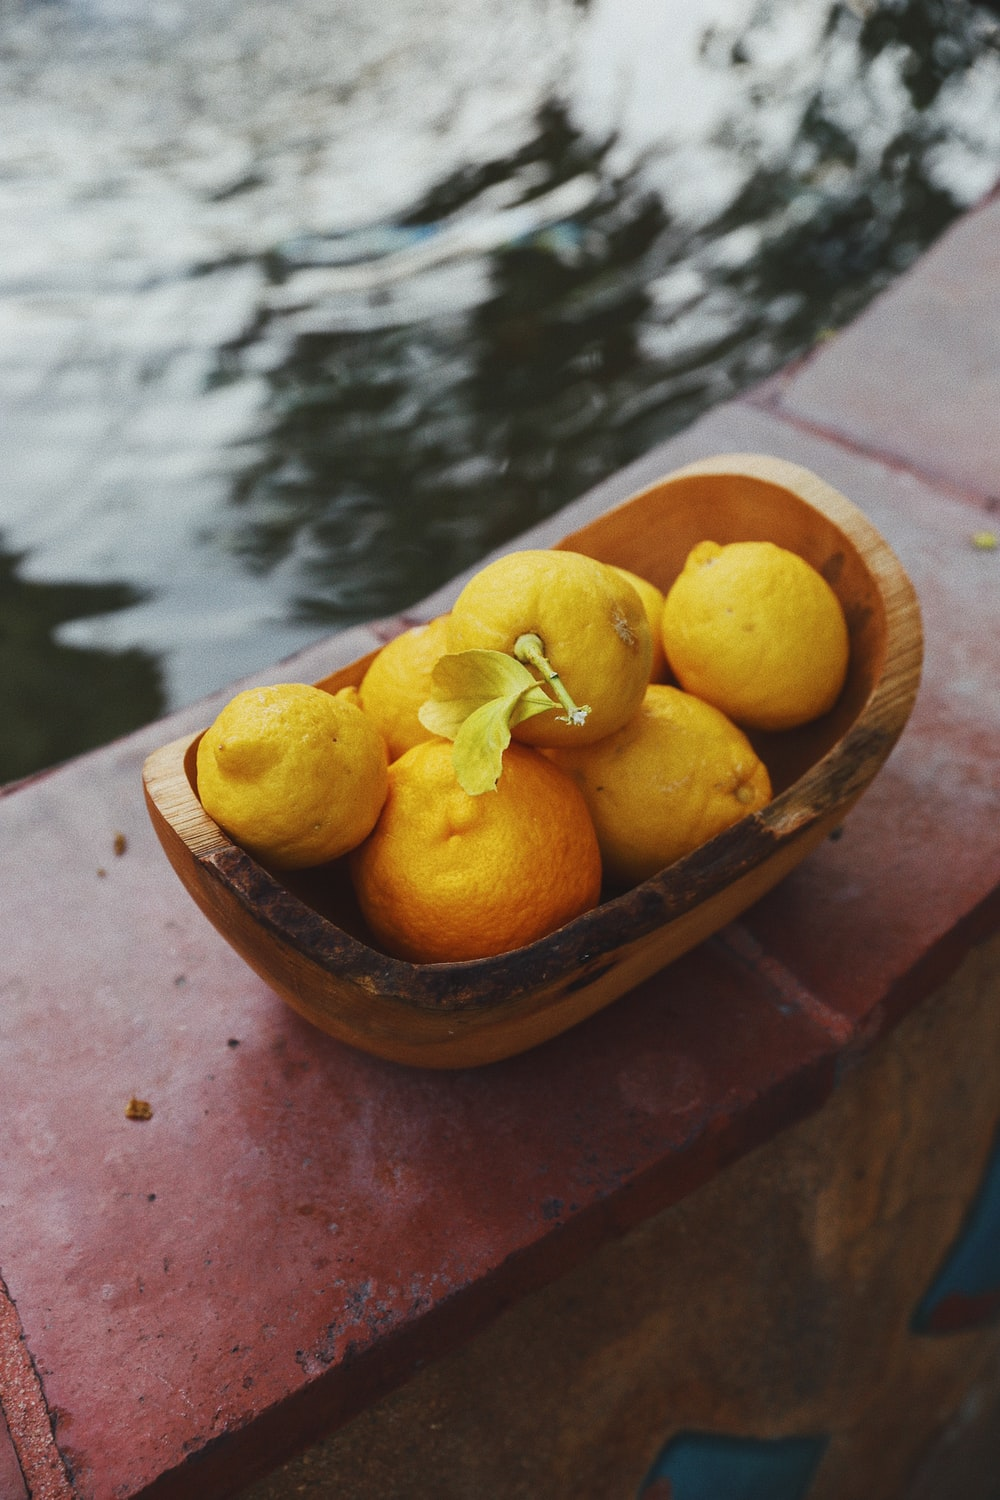 yellow citrus fruits on brown wooden bowl